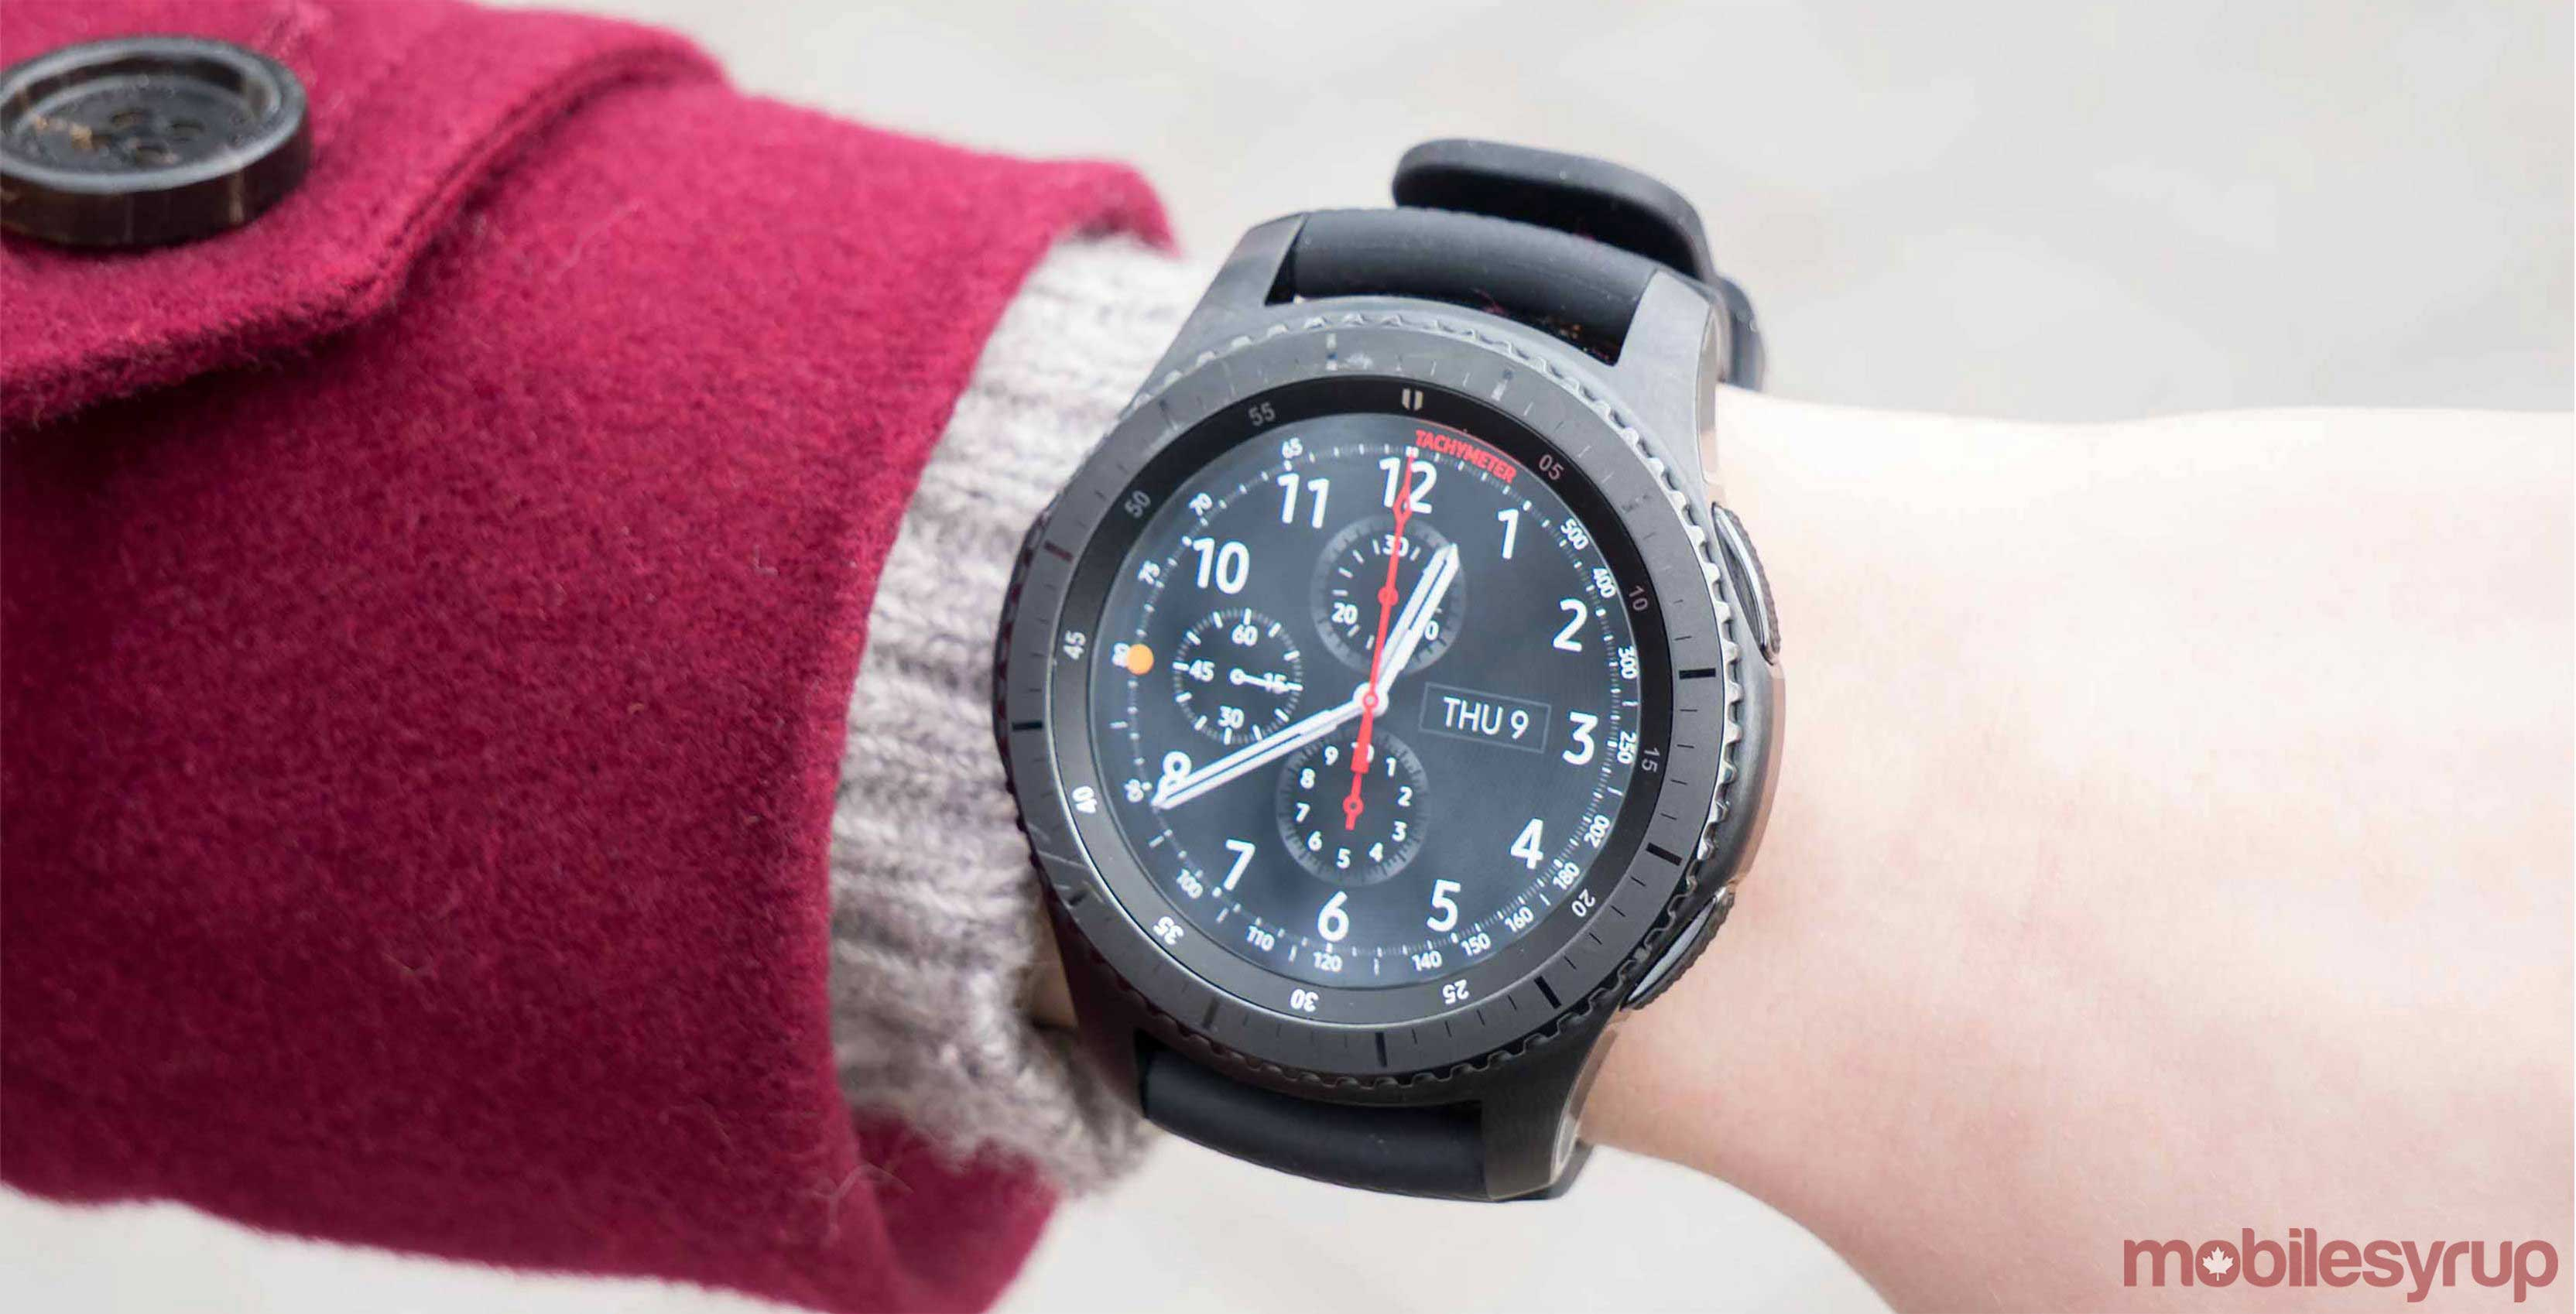 Gear S3 on arm